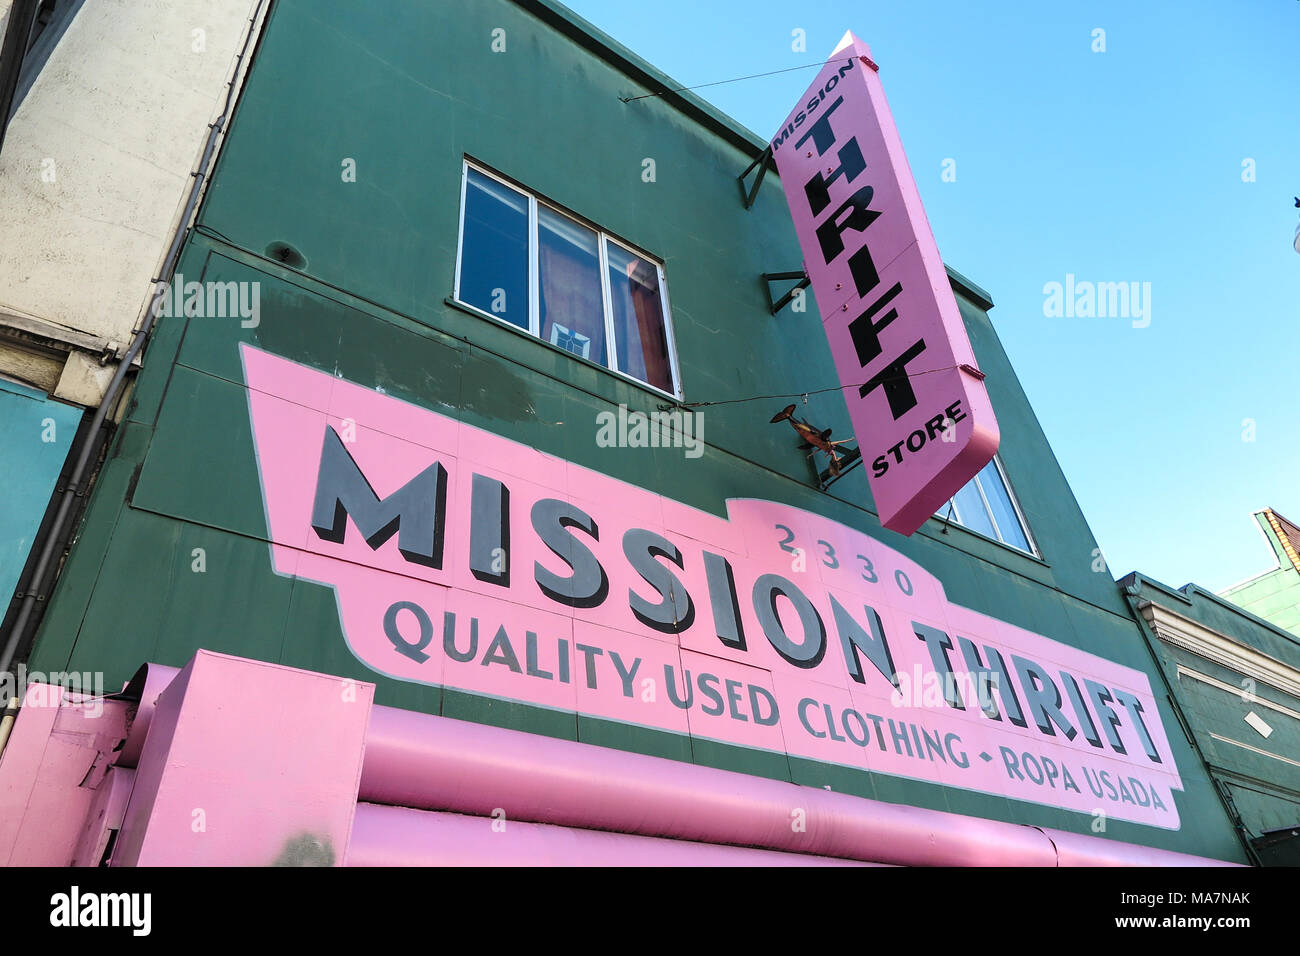 Thrift Shop San Francisco - Stock Image